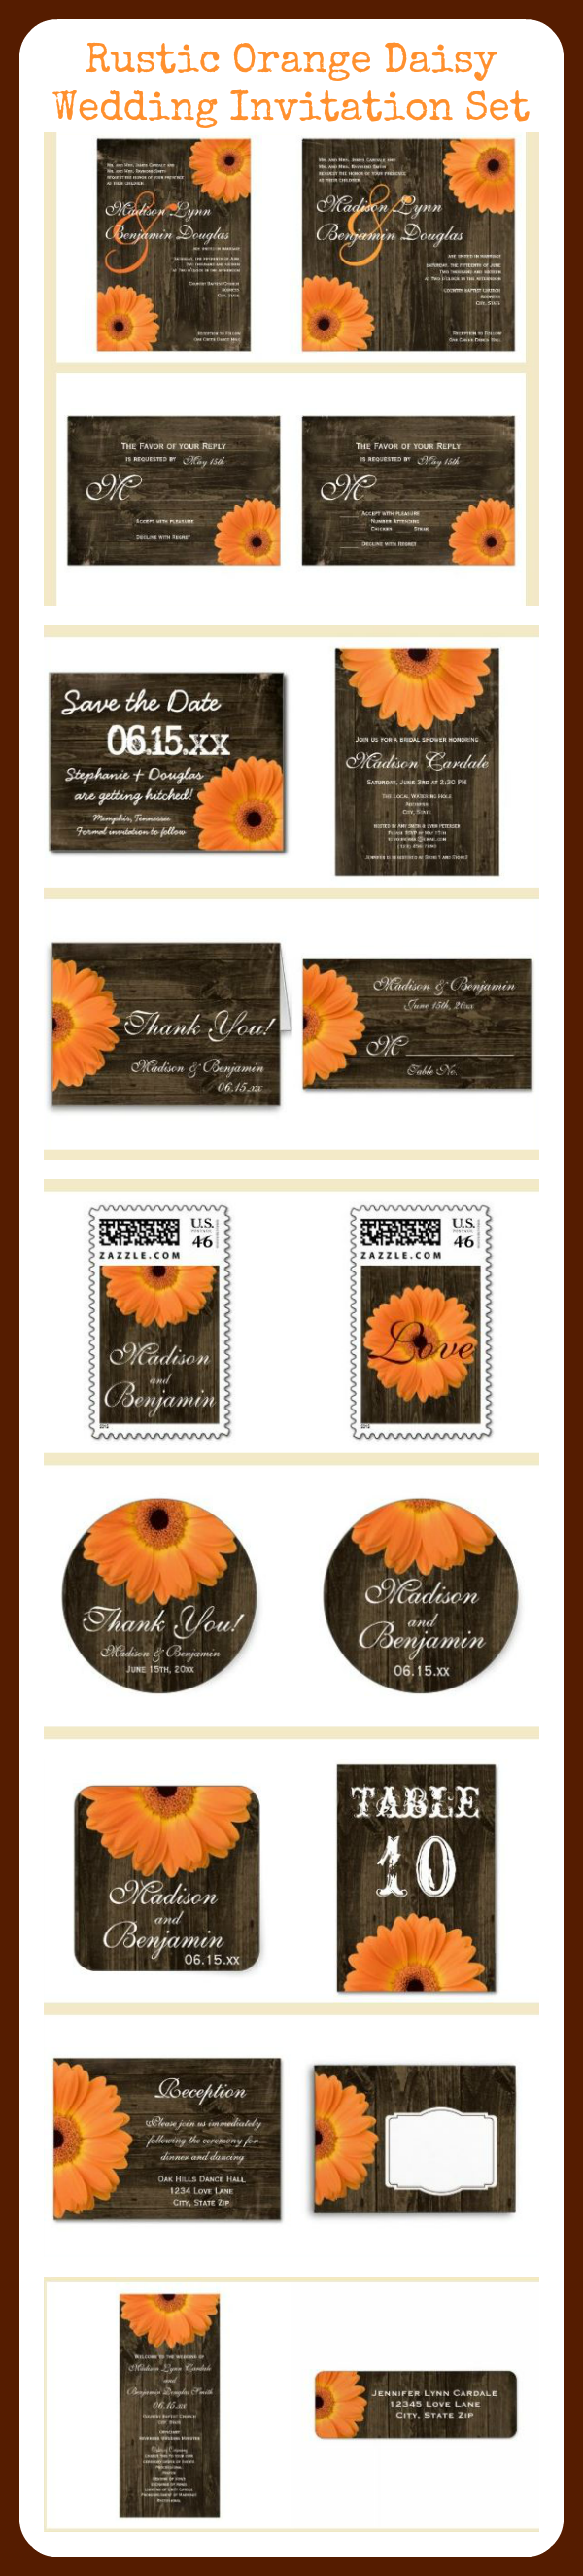 Orange Gerber Daisy Barn Wood Rustic Country Wedding Invitation Set